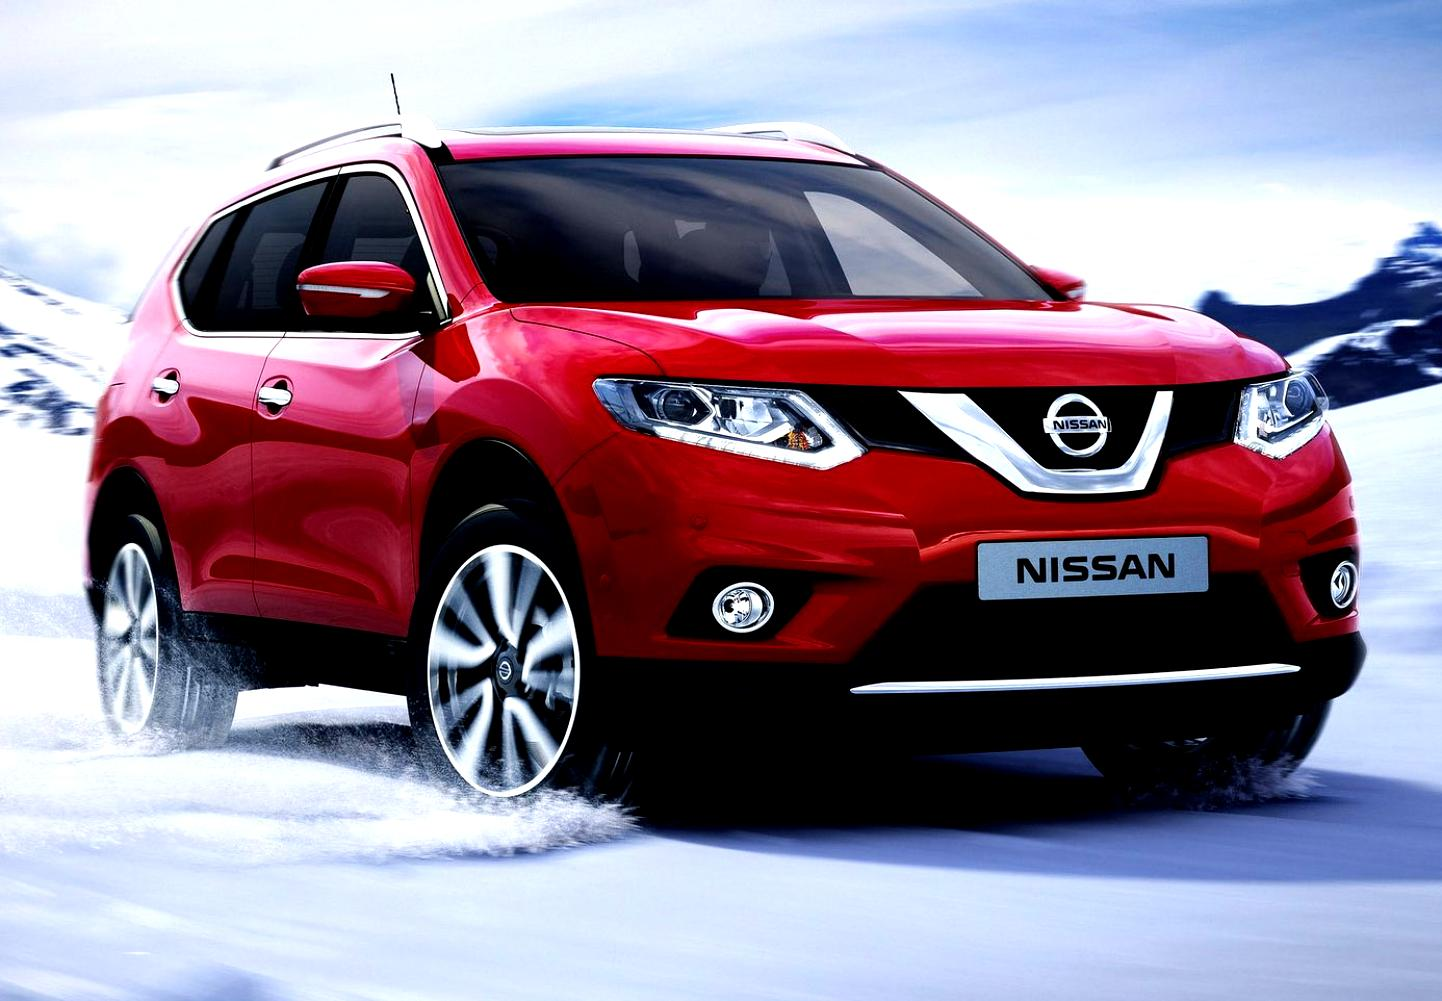 Nissan x-trail 20 at 4at sport coupe